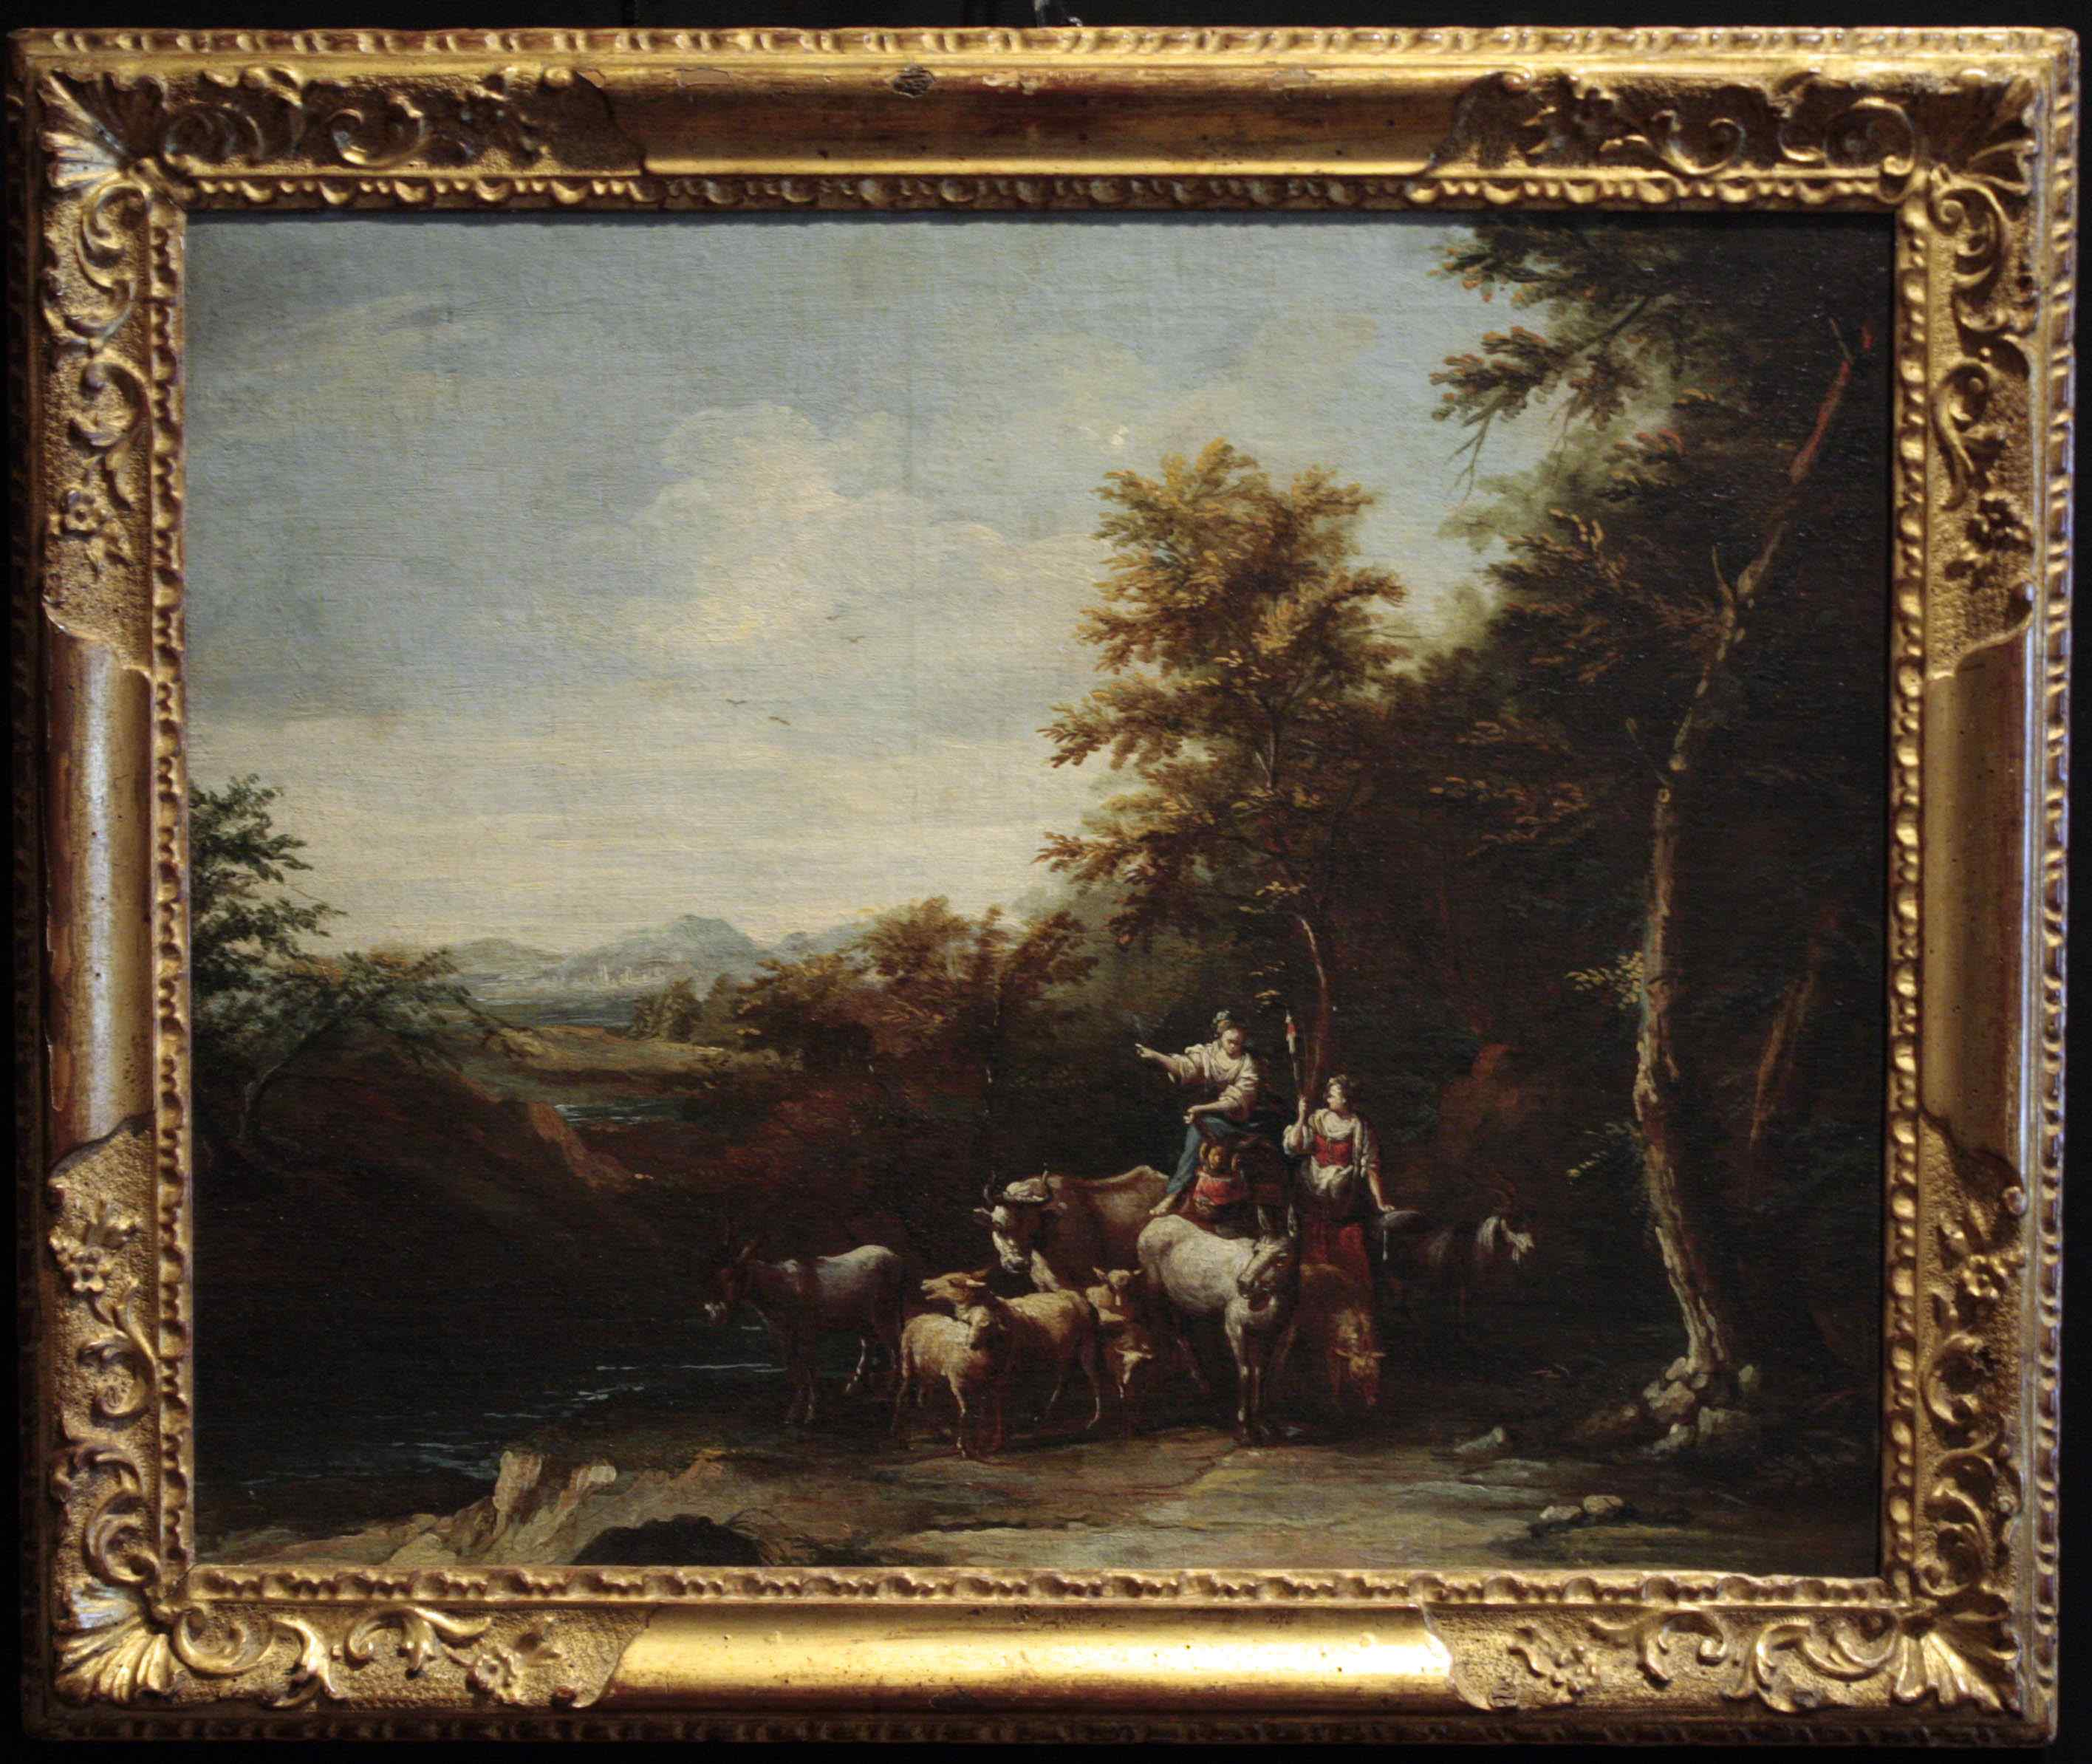 Zais Giuseppe (1709-1774) - Landscape with peasants and arme